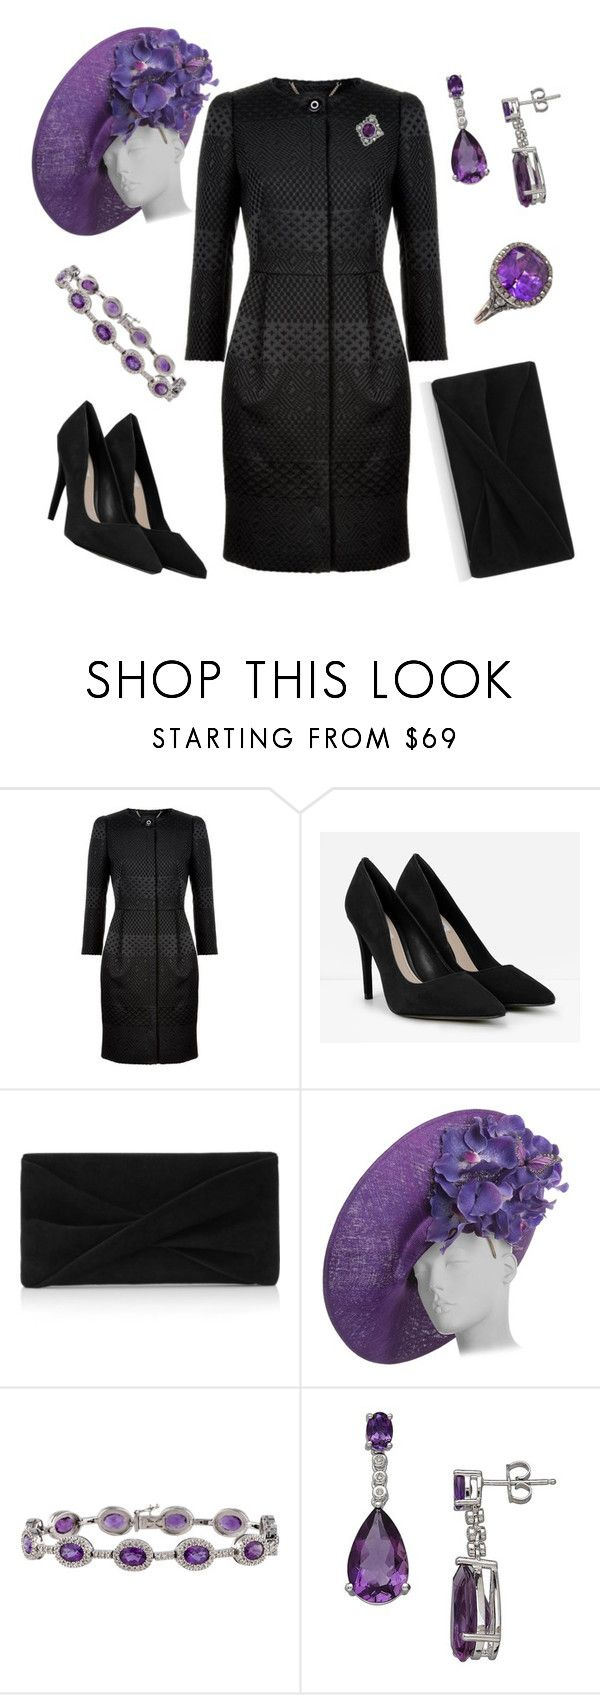 """Statement Hat"" by nmccullough ❤ liked on Polyvore featuring Ted Baker, CHARLES & KEITH, Reiss, Philip Treacy and Lord & Taylor"